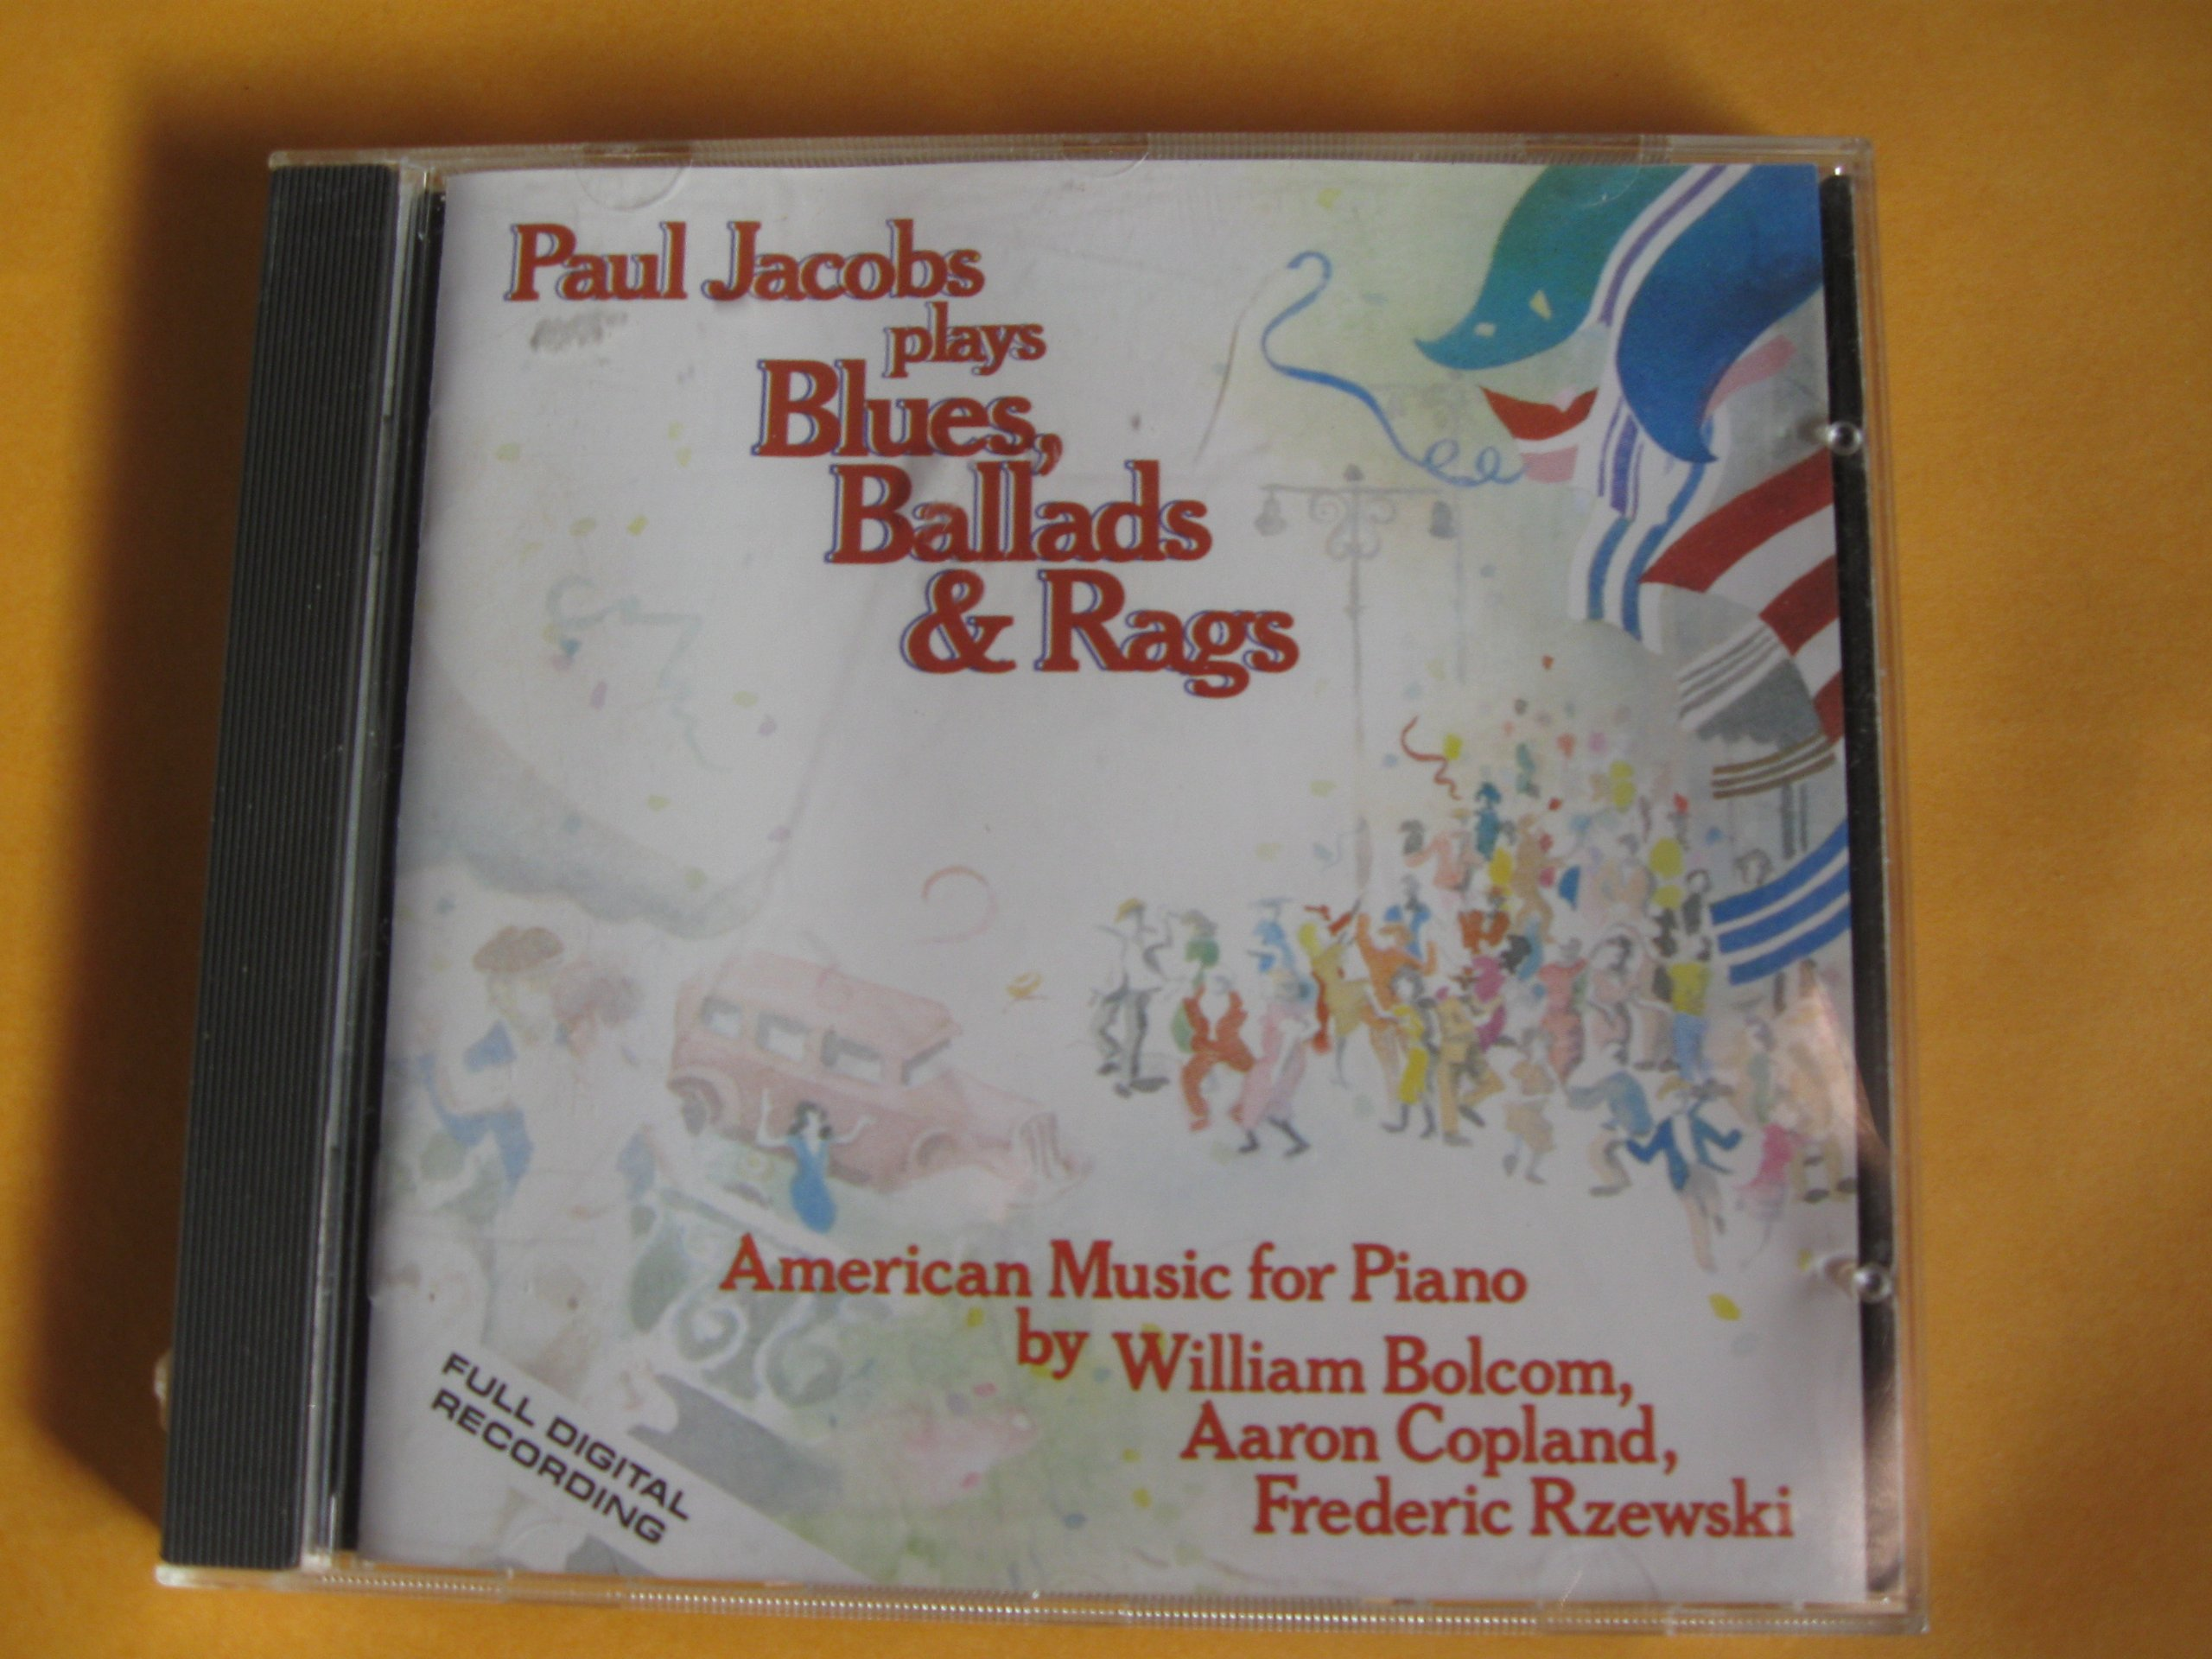 Paul Jacobs Plays Blues, Ballads & Rags by Nonesuch Digital